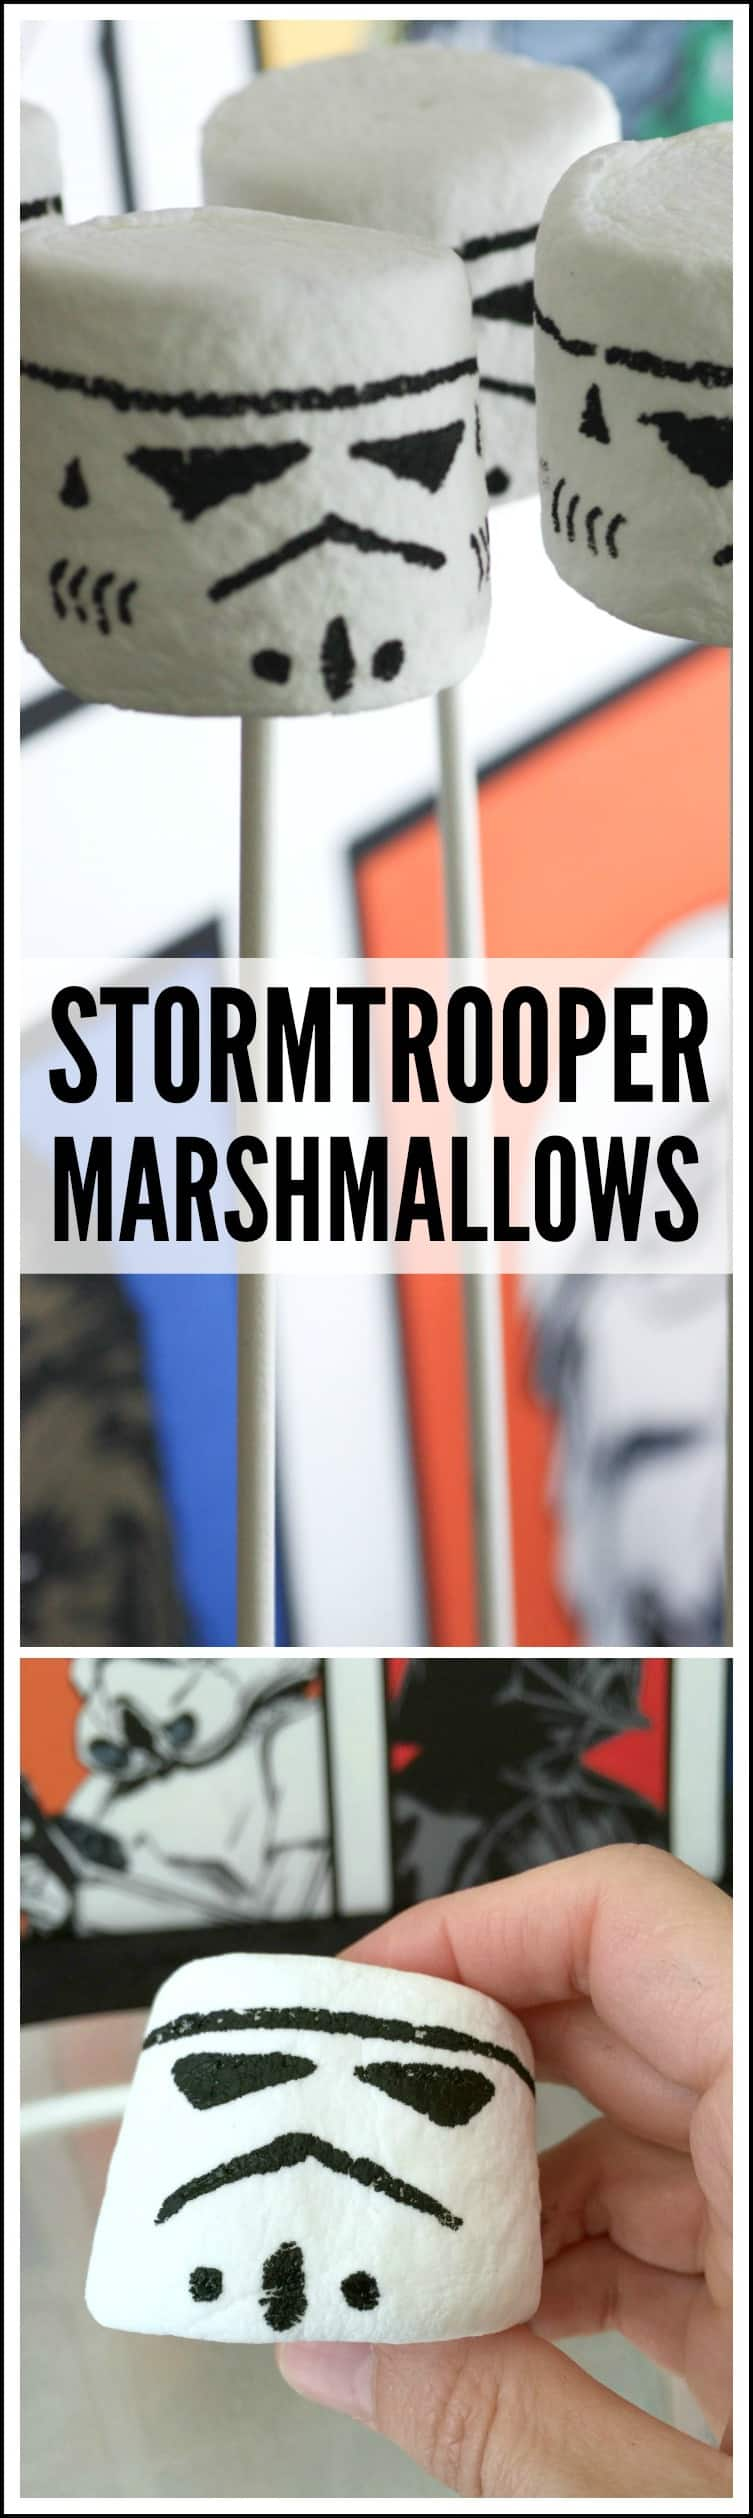 Storm trooper marshmallow pops